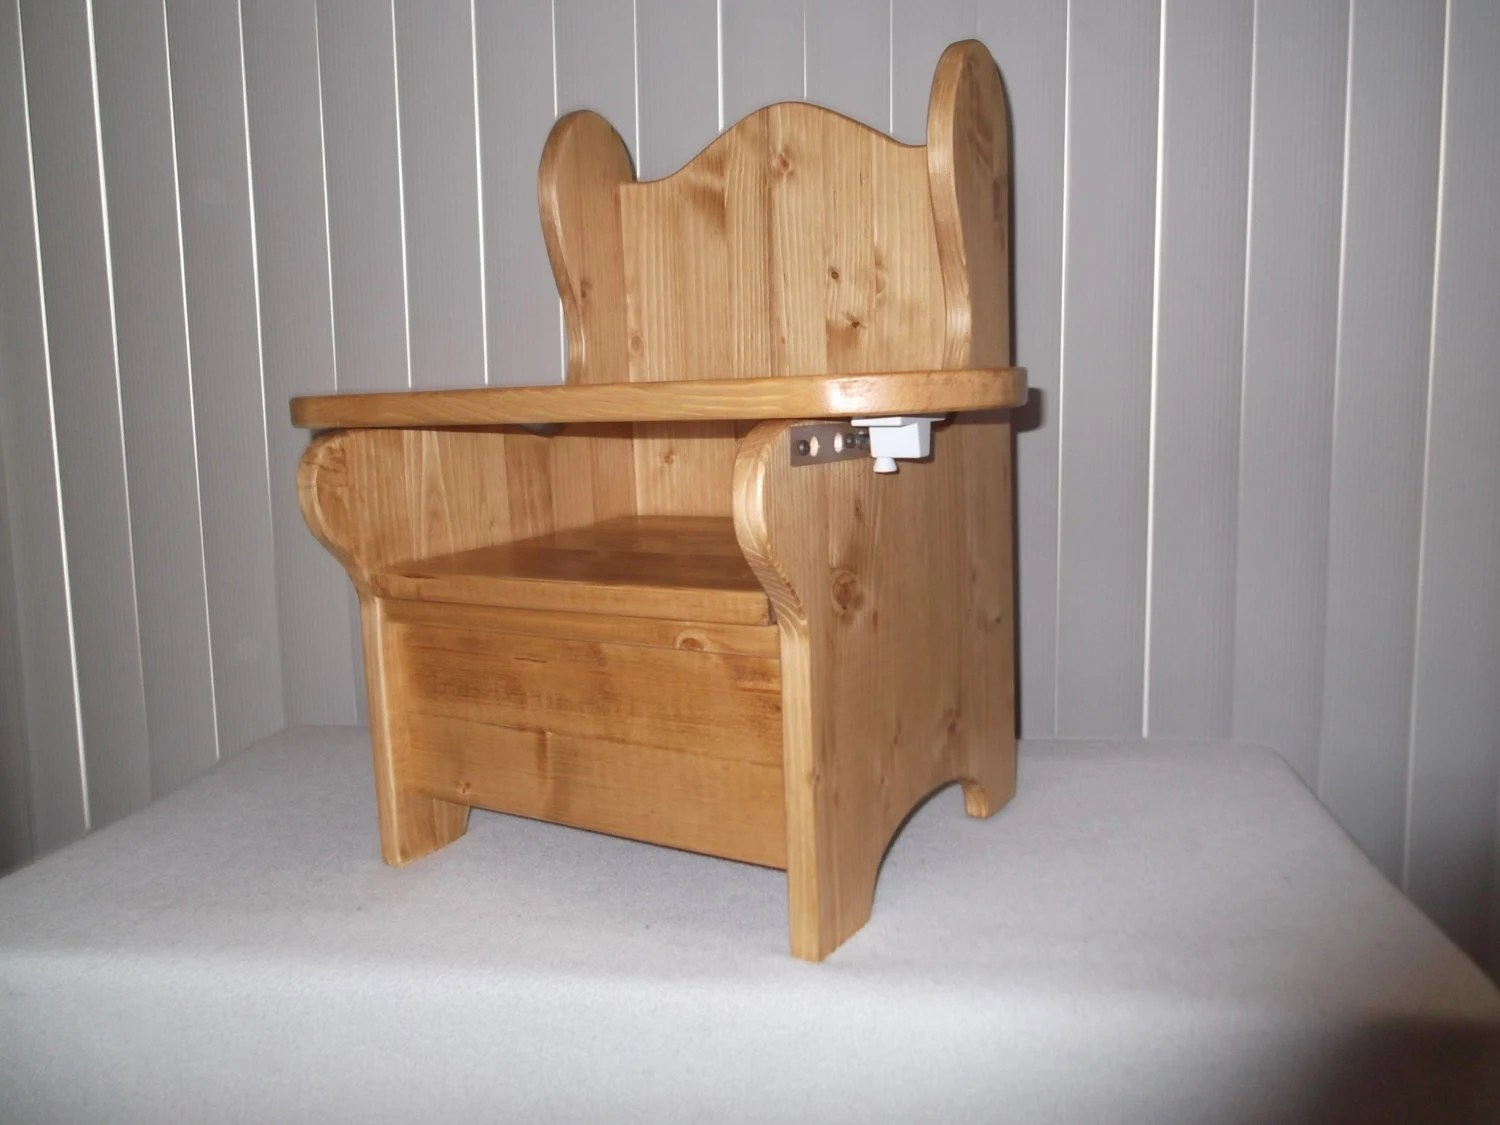 wooden potty chair neutral posture right reg size w tray by wonderwoodshop on etsy